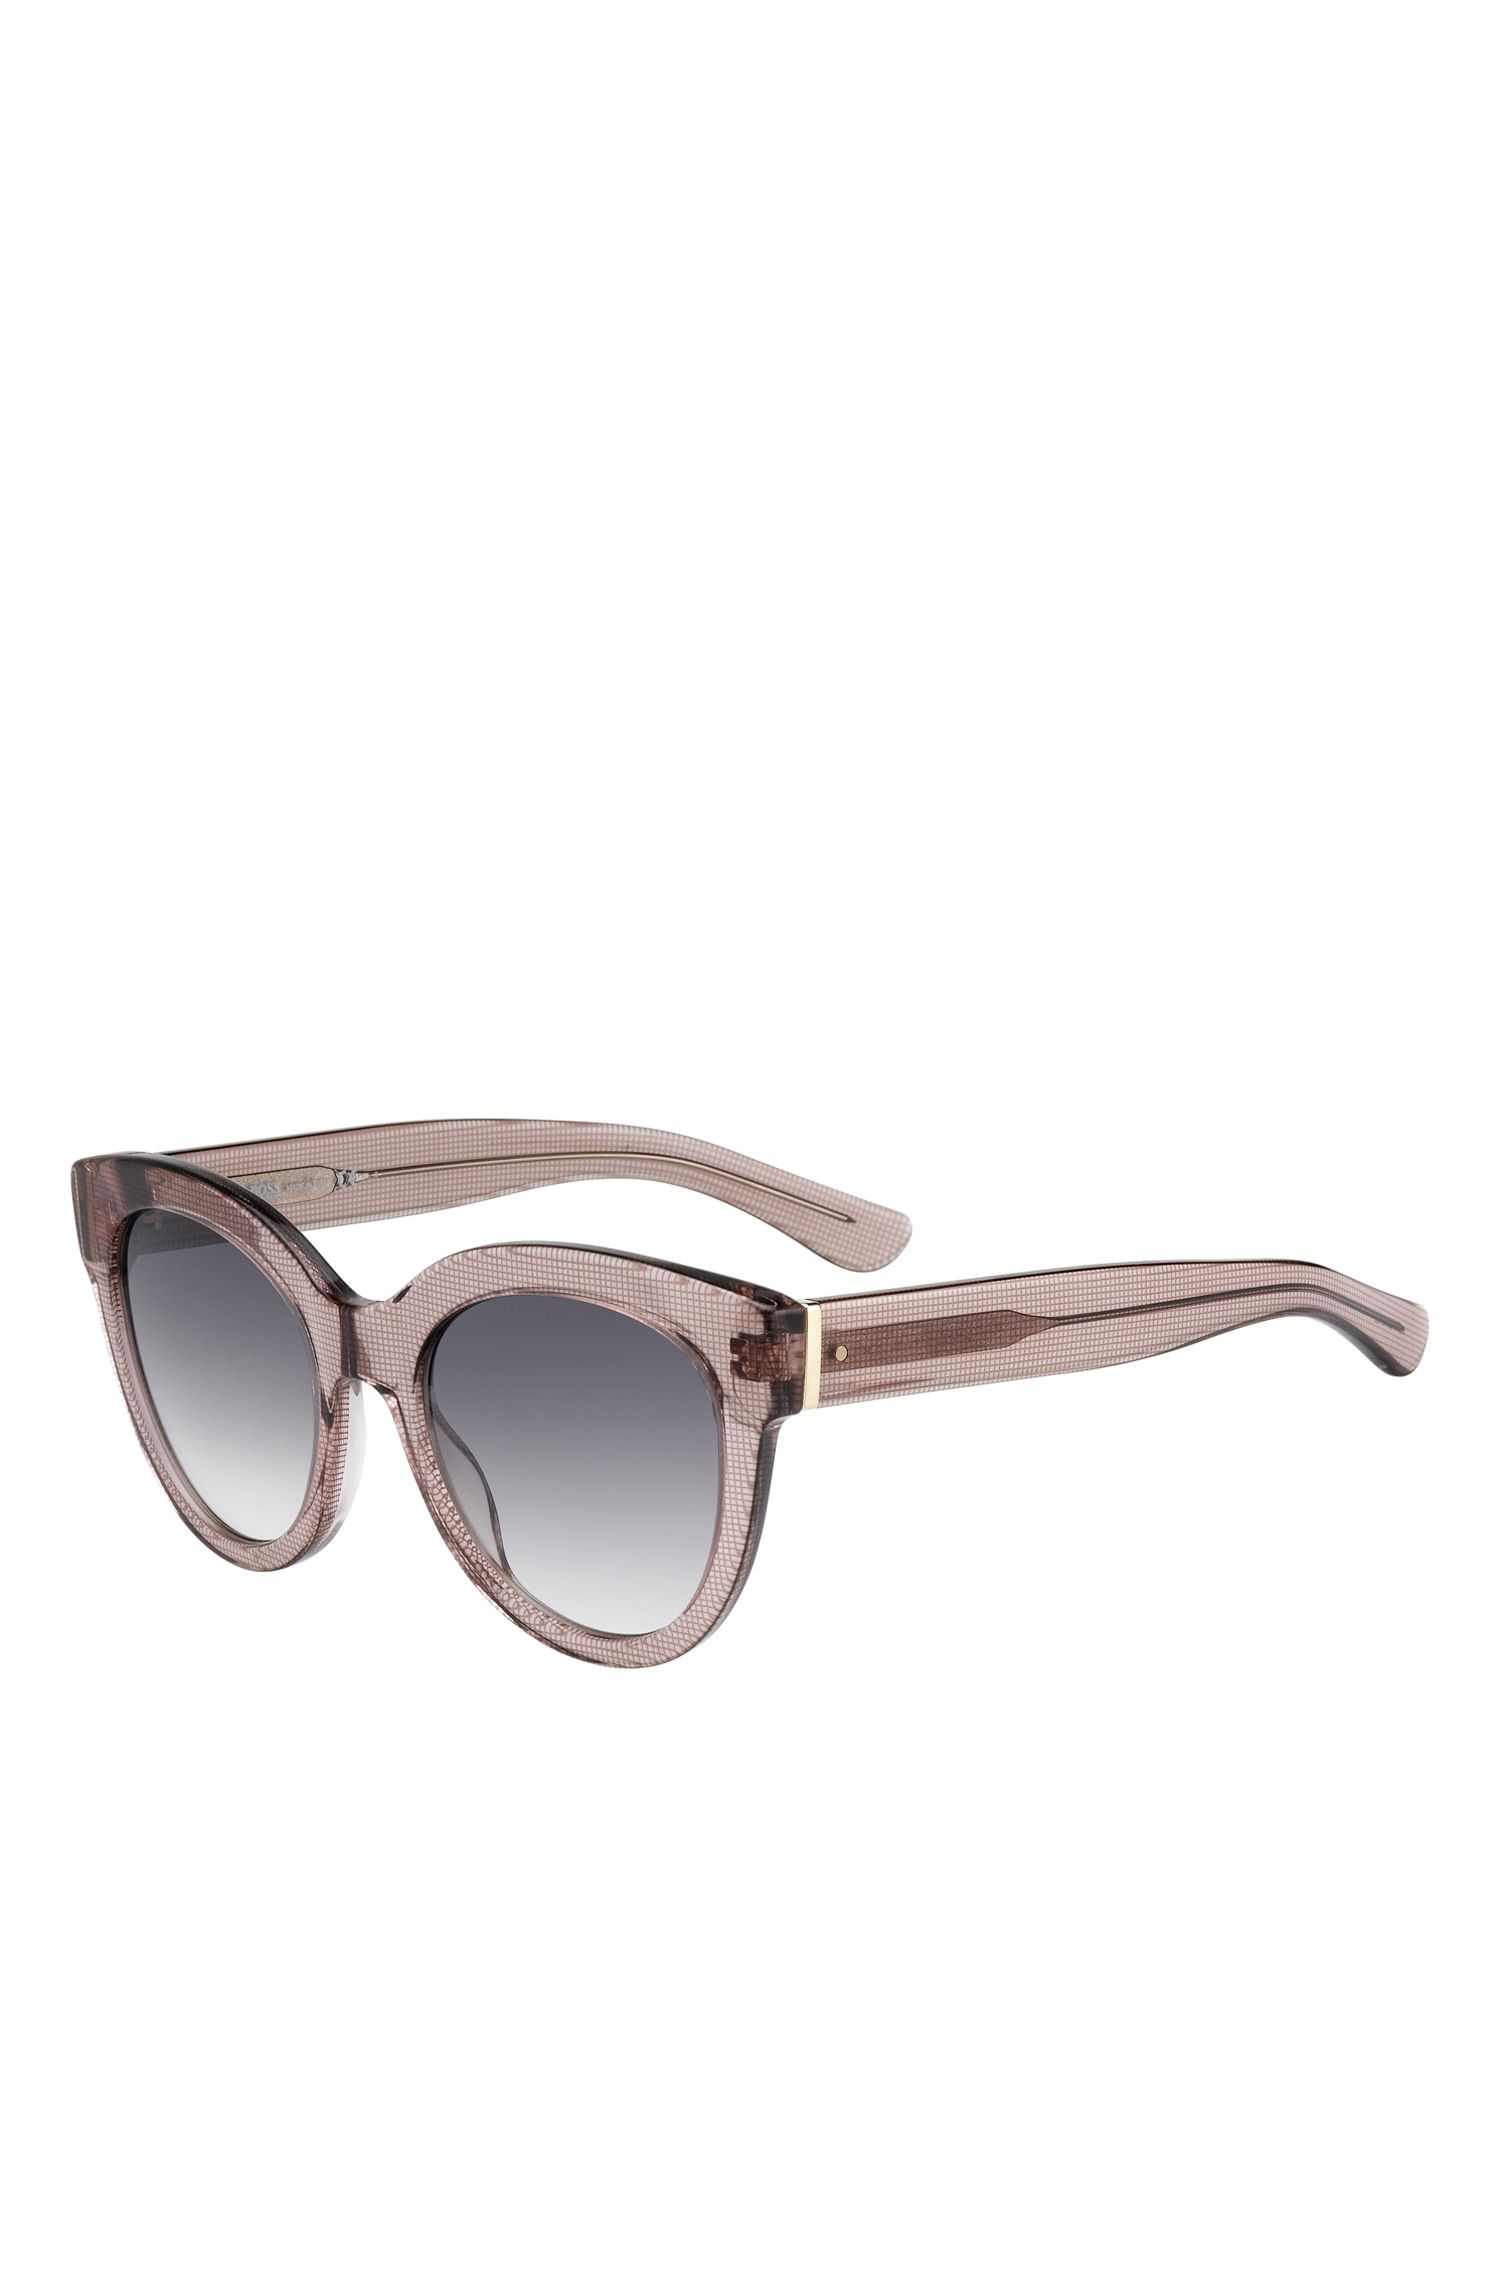 'BOSS 0675' | Gray Gradient Lens Cateye Sunglasses